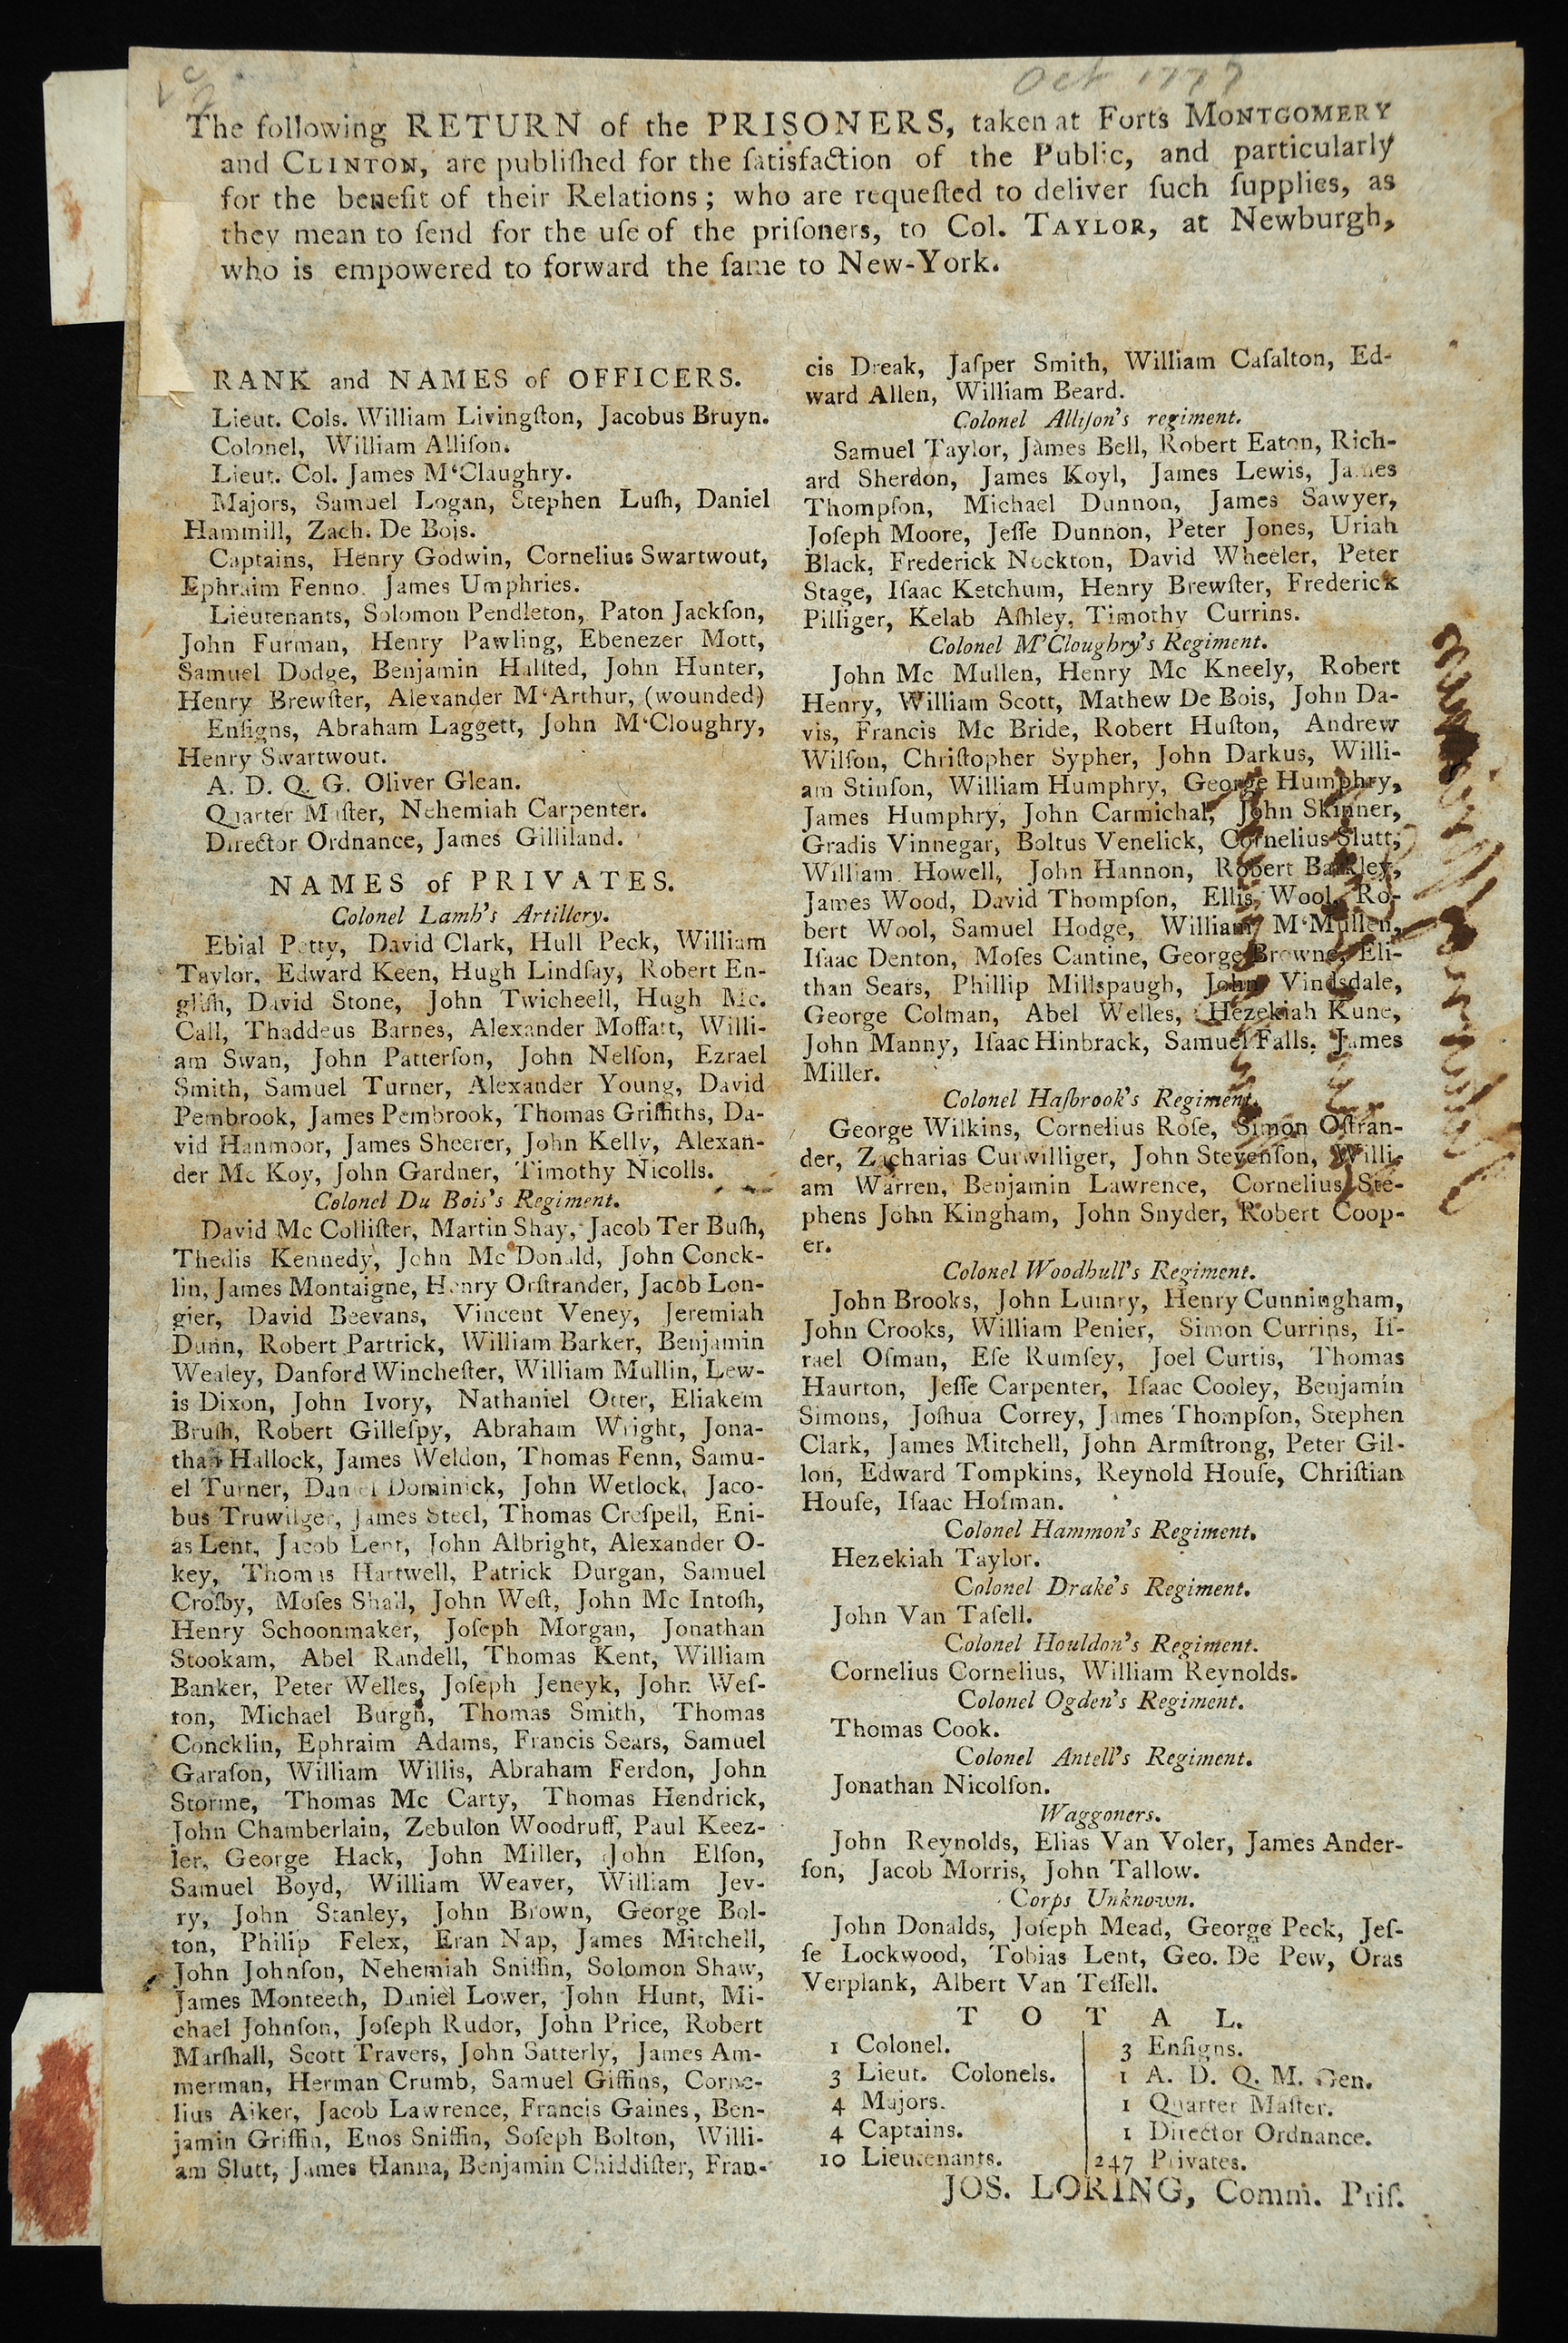 The Following Return of the Prisoners, Taken at Forts Montgomery and Clinton, Are Published for the Satisfaction of the Public, and Particularly for the Benefit of Their Relations, Joshua Loring, [New York, 1778]